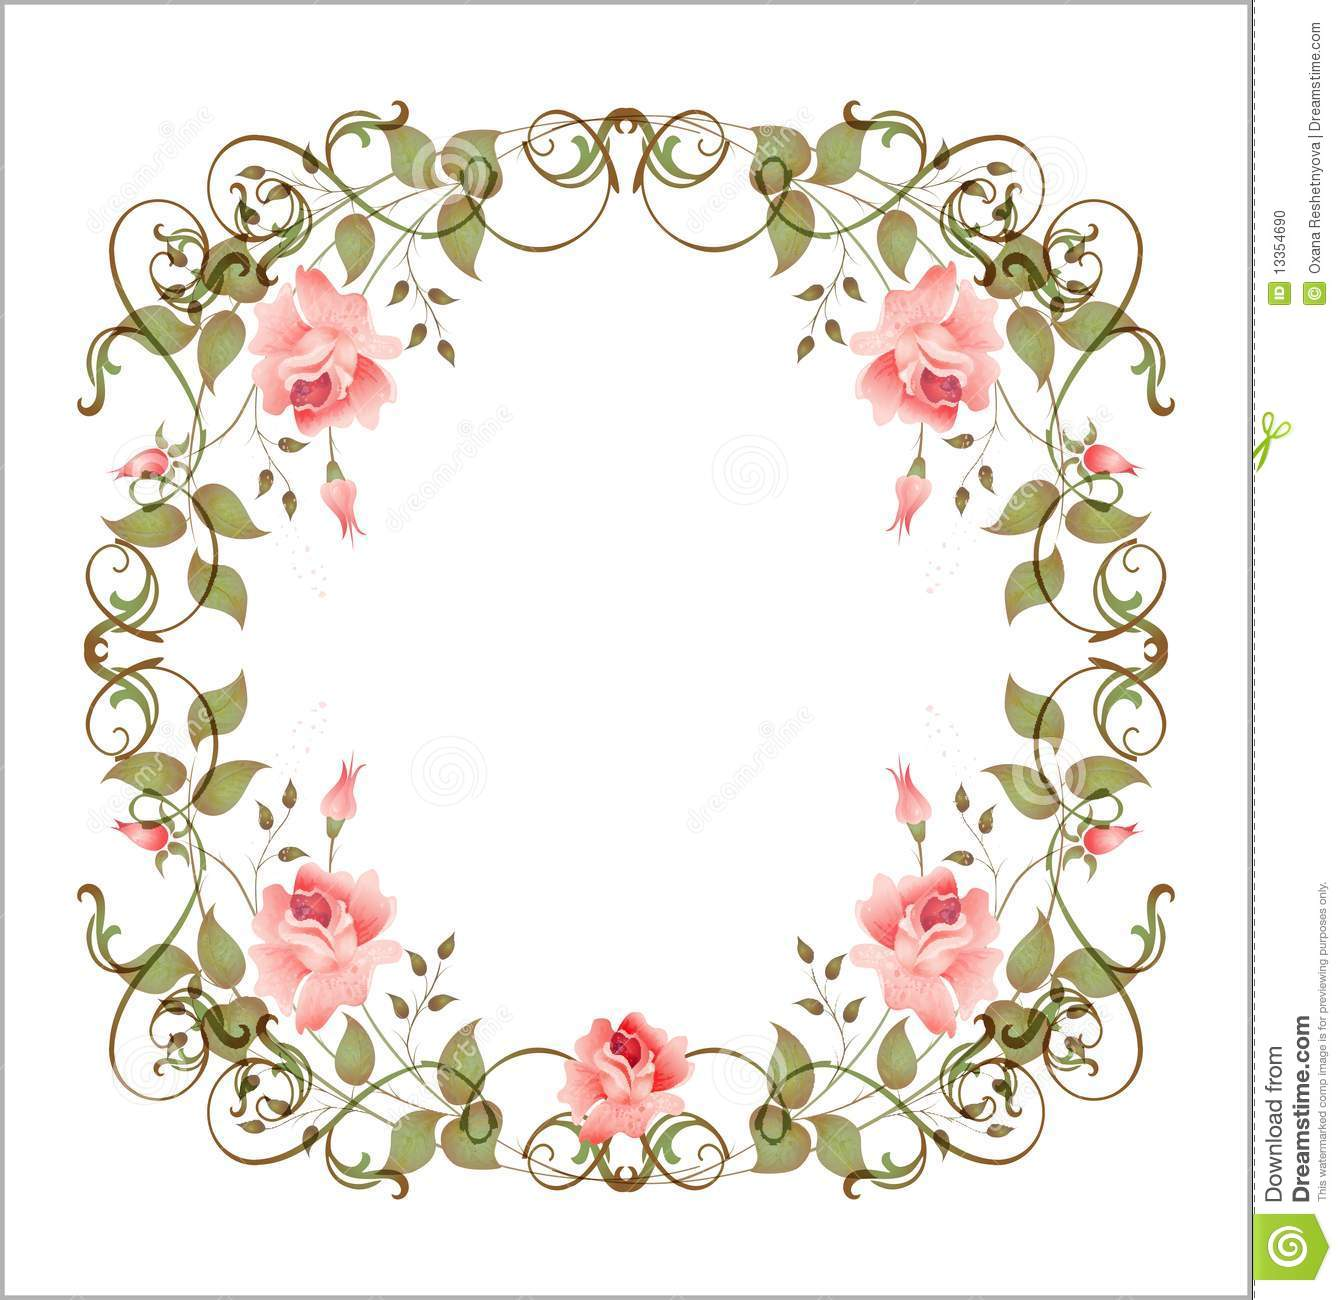 Bridal Embroidery Frame Designs